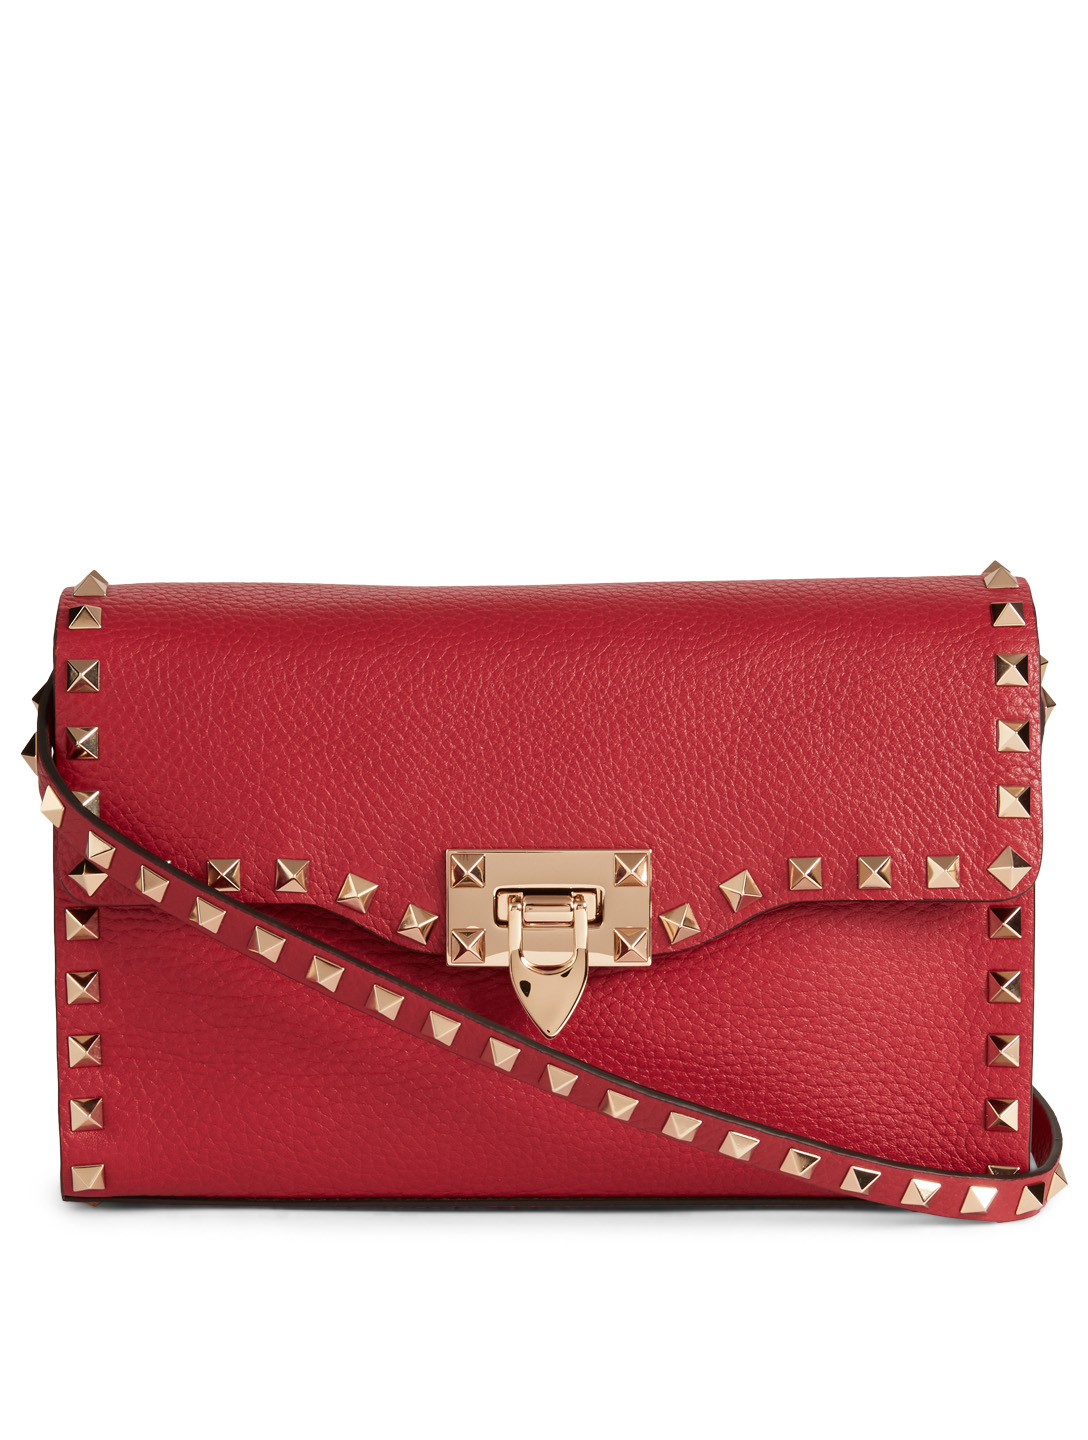 VALENTINO GARAVANI Medium Rockstud Leather Bag Women's Red